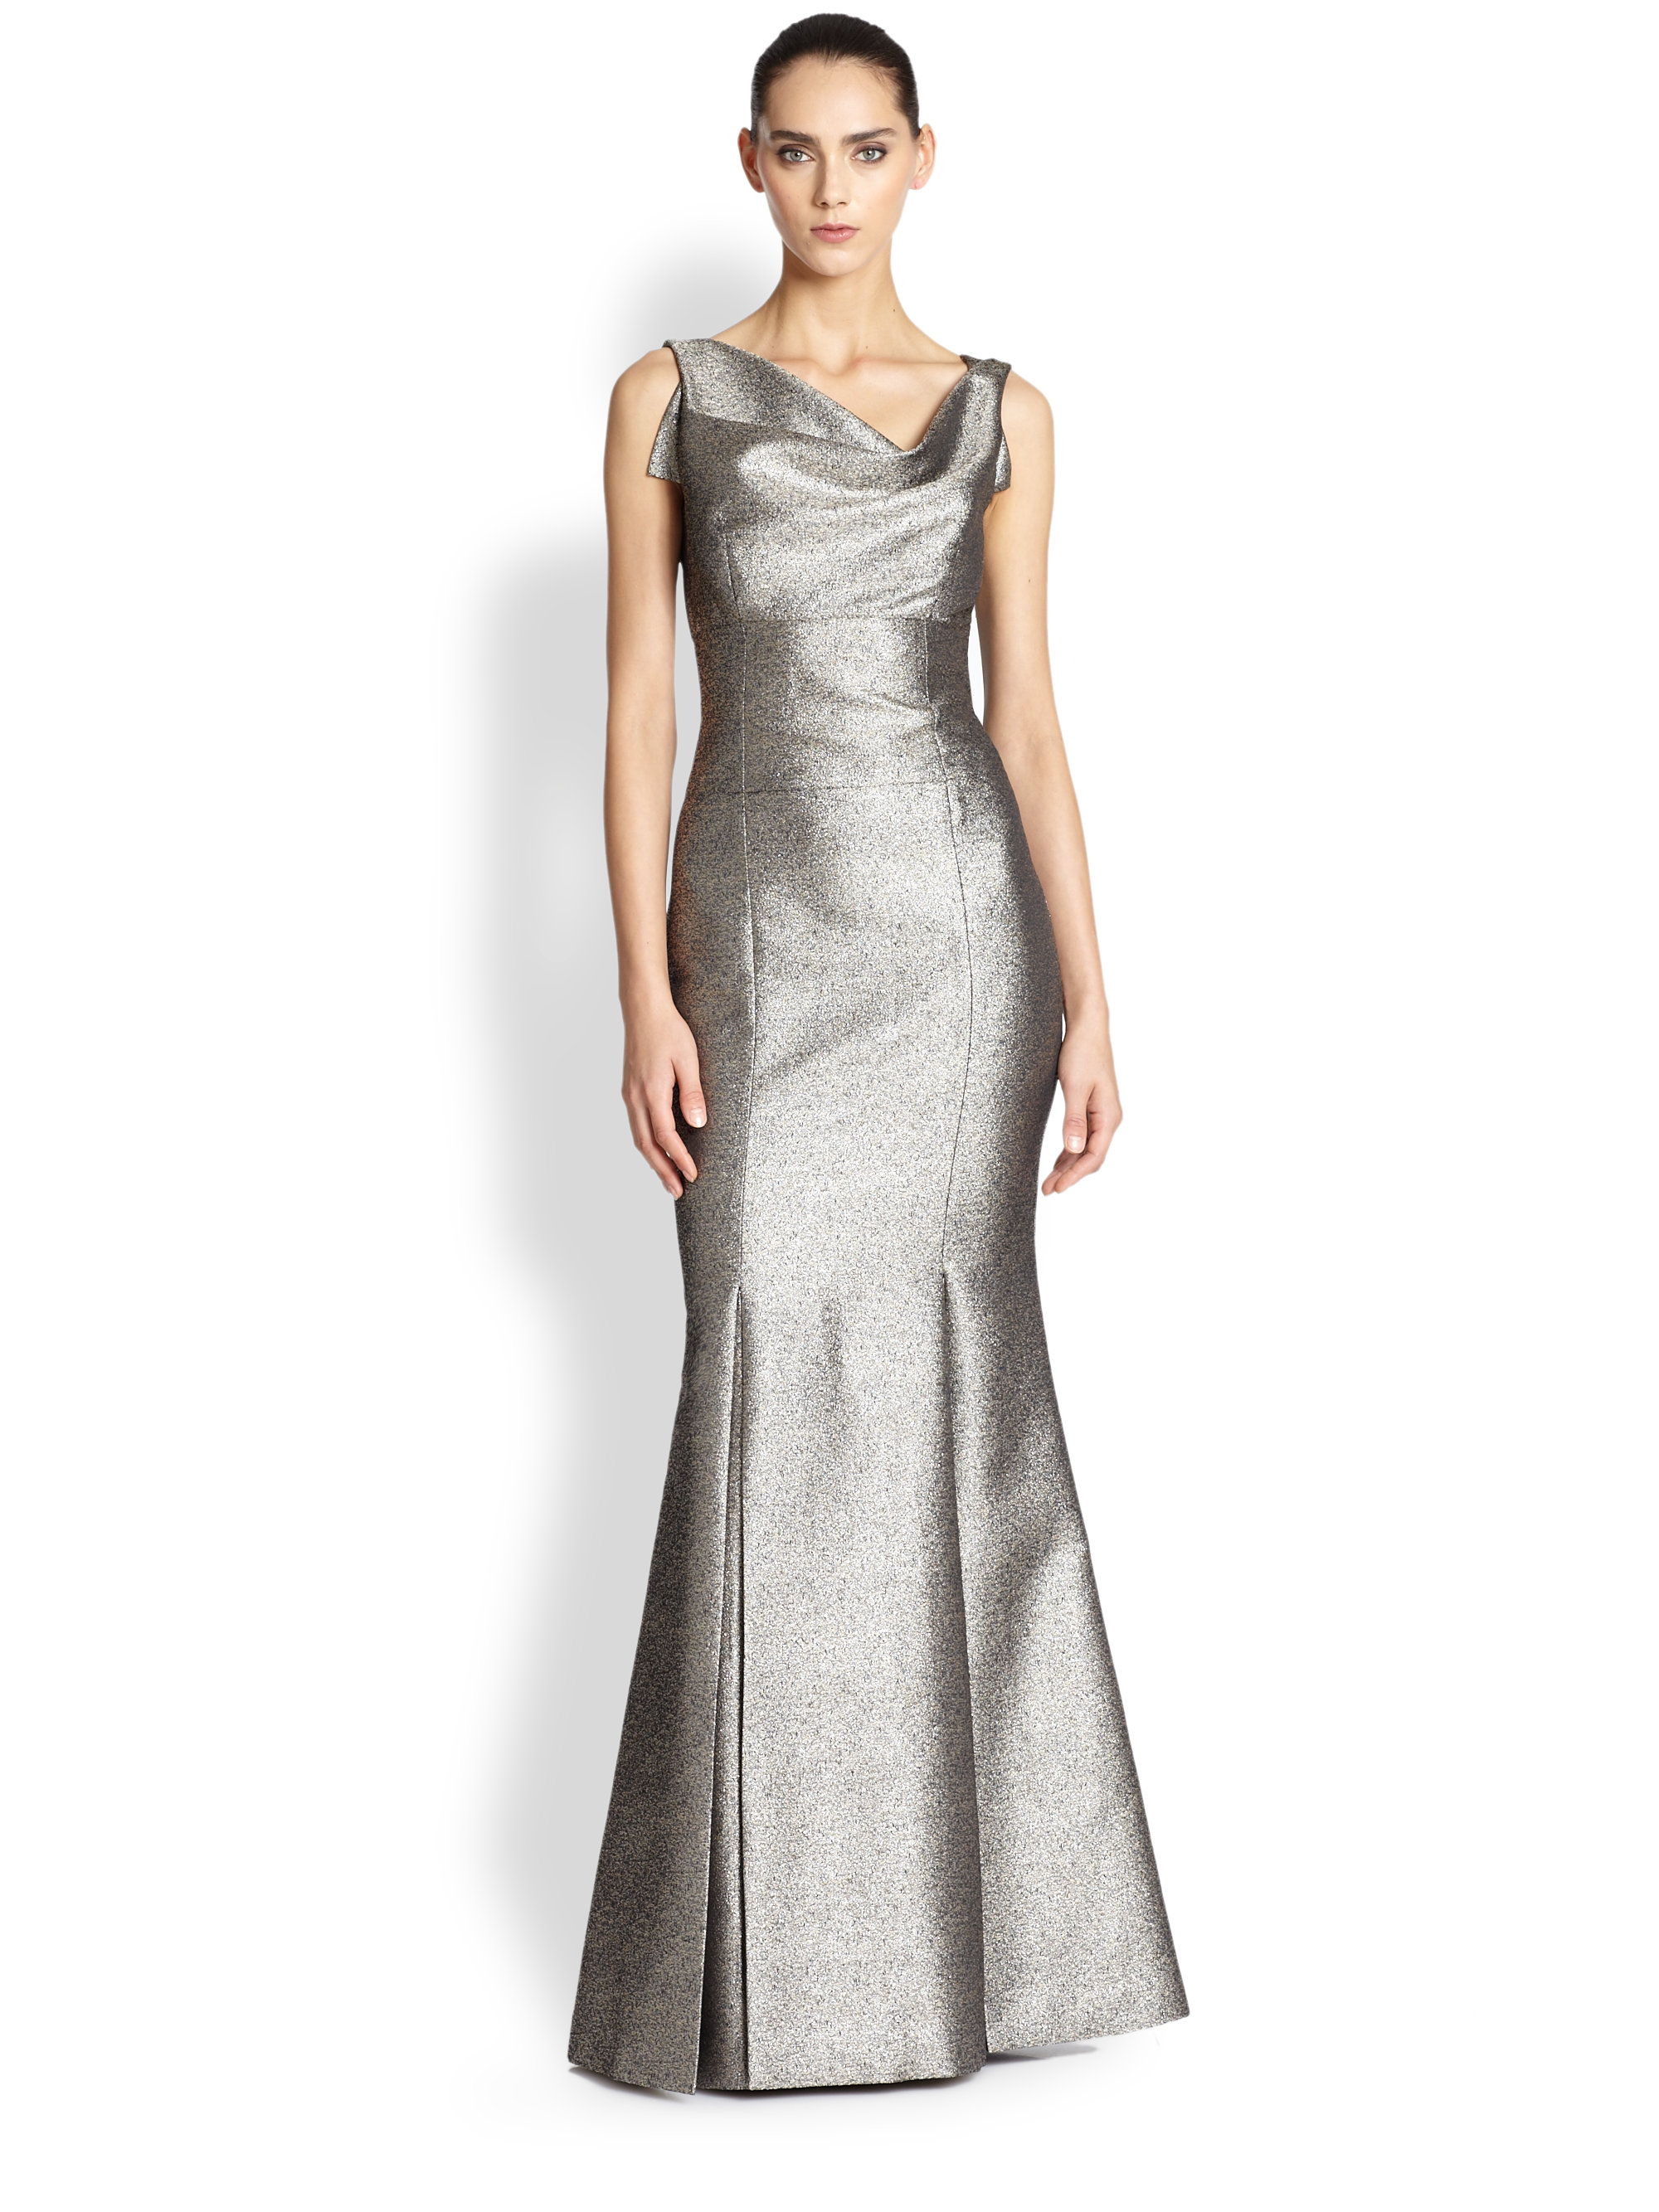 Lyst - Black Halo Drape-Neck Metallic Gown in Metallic